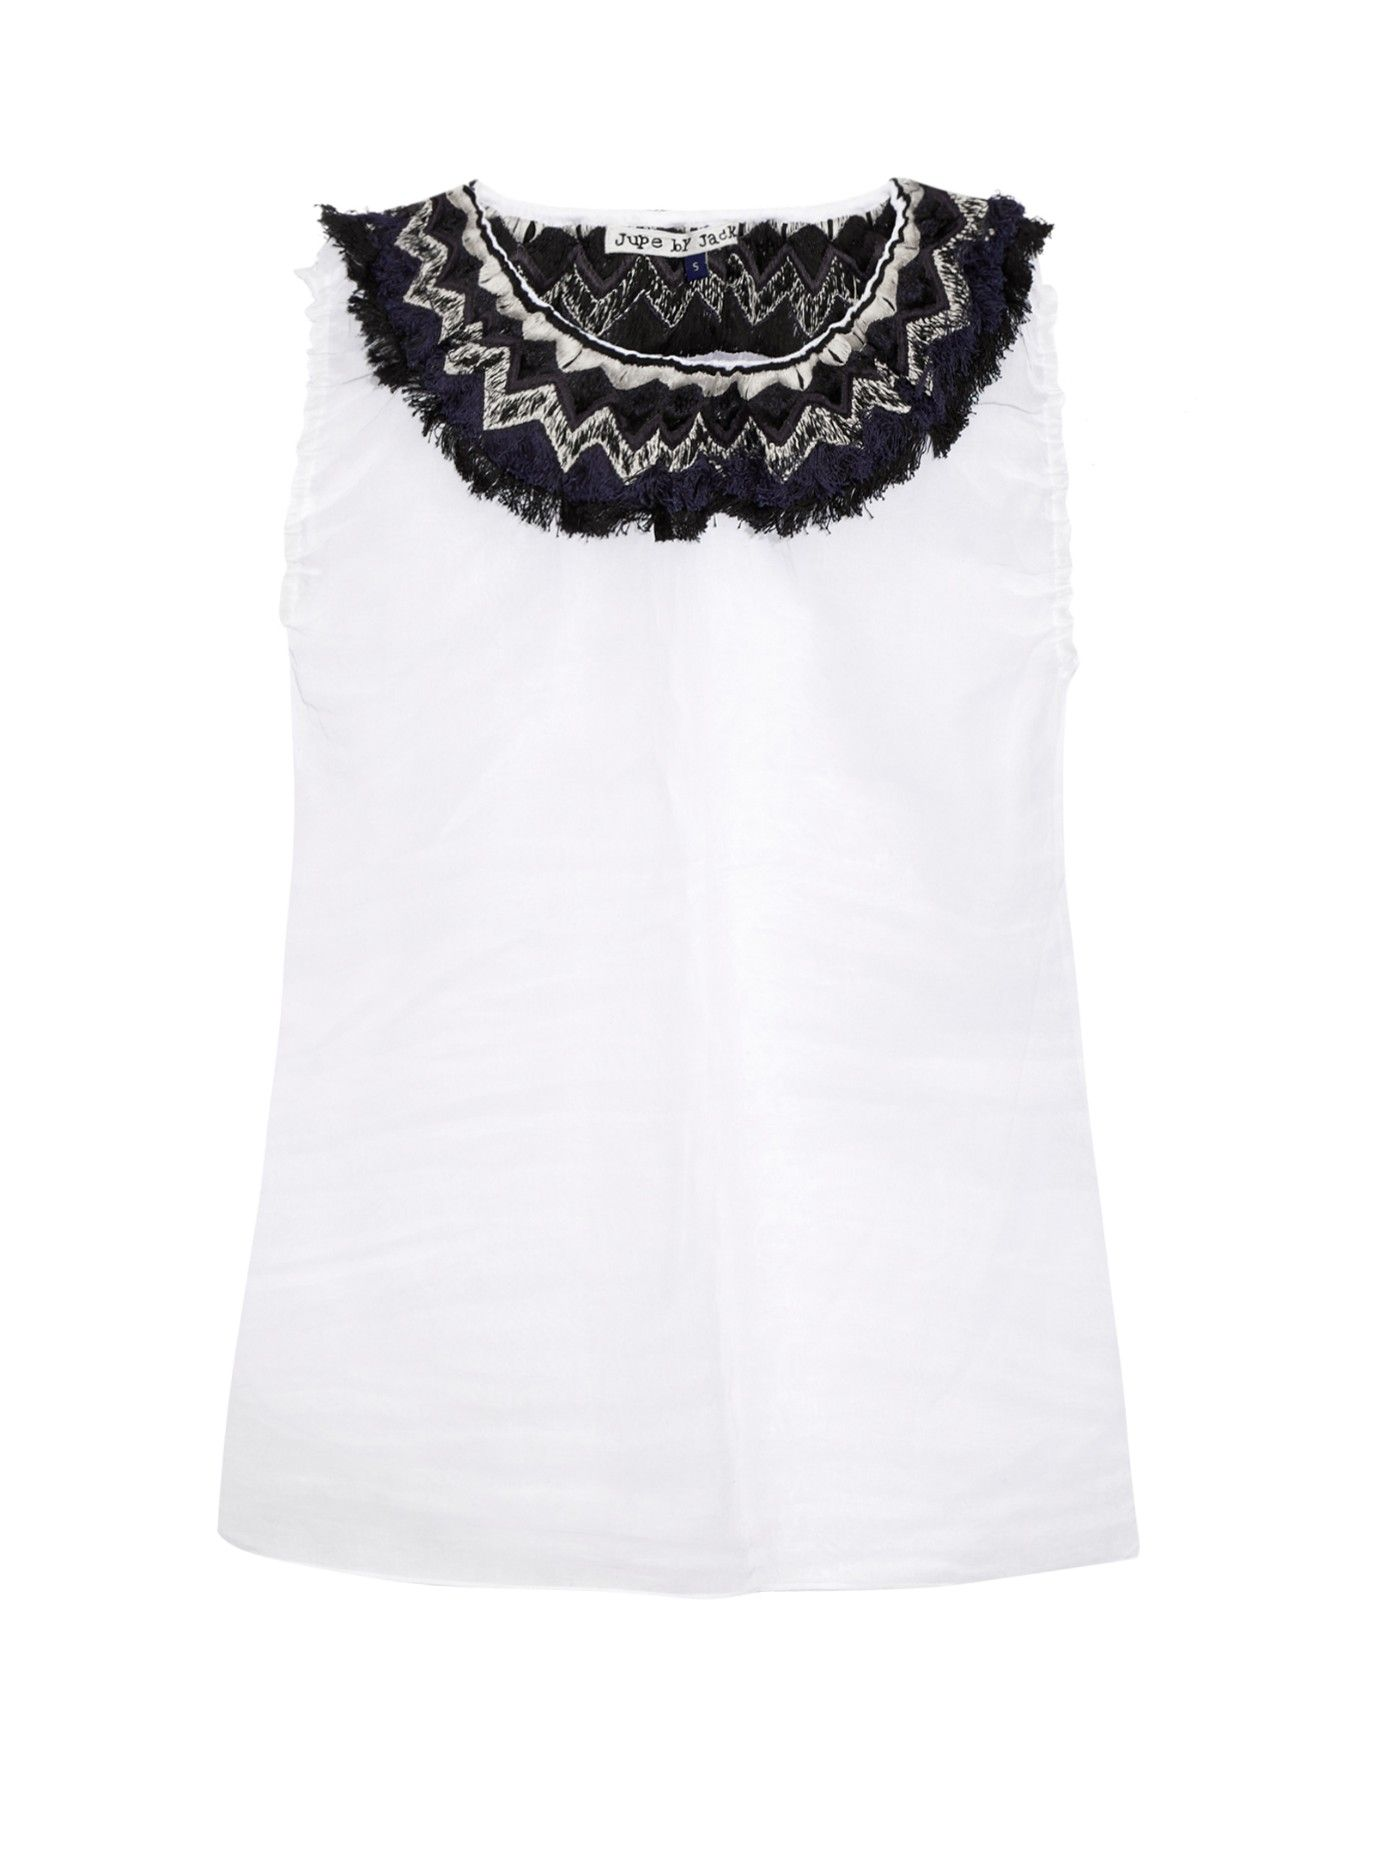 Jupe by Jackie lifts this white sheer cotton-organdie Vinas top with its signature intricate embellishment.